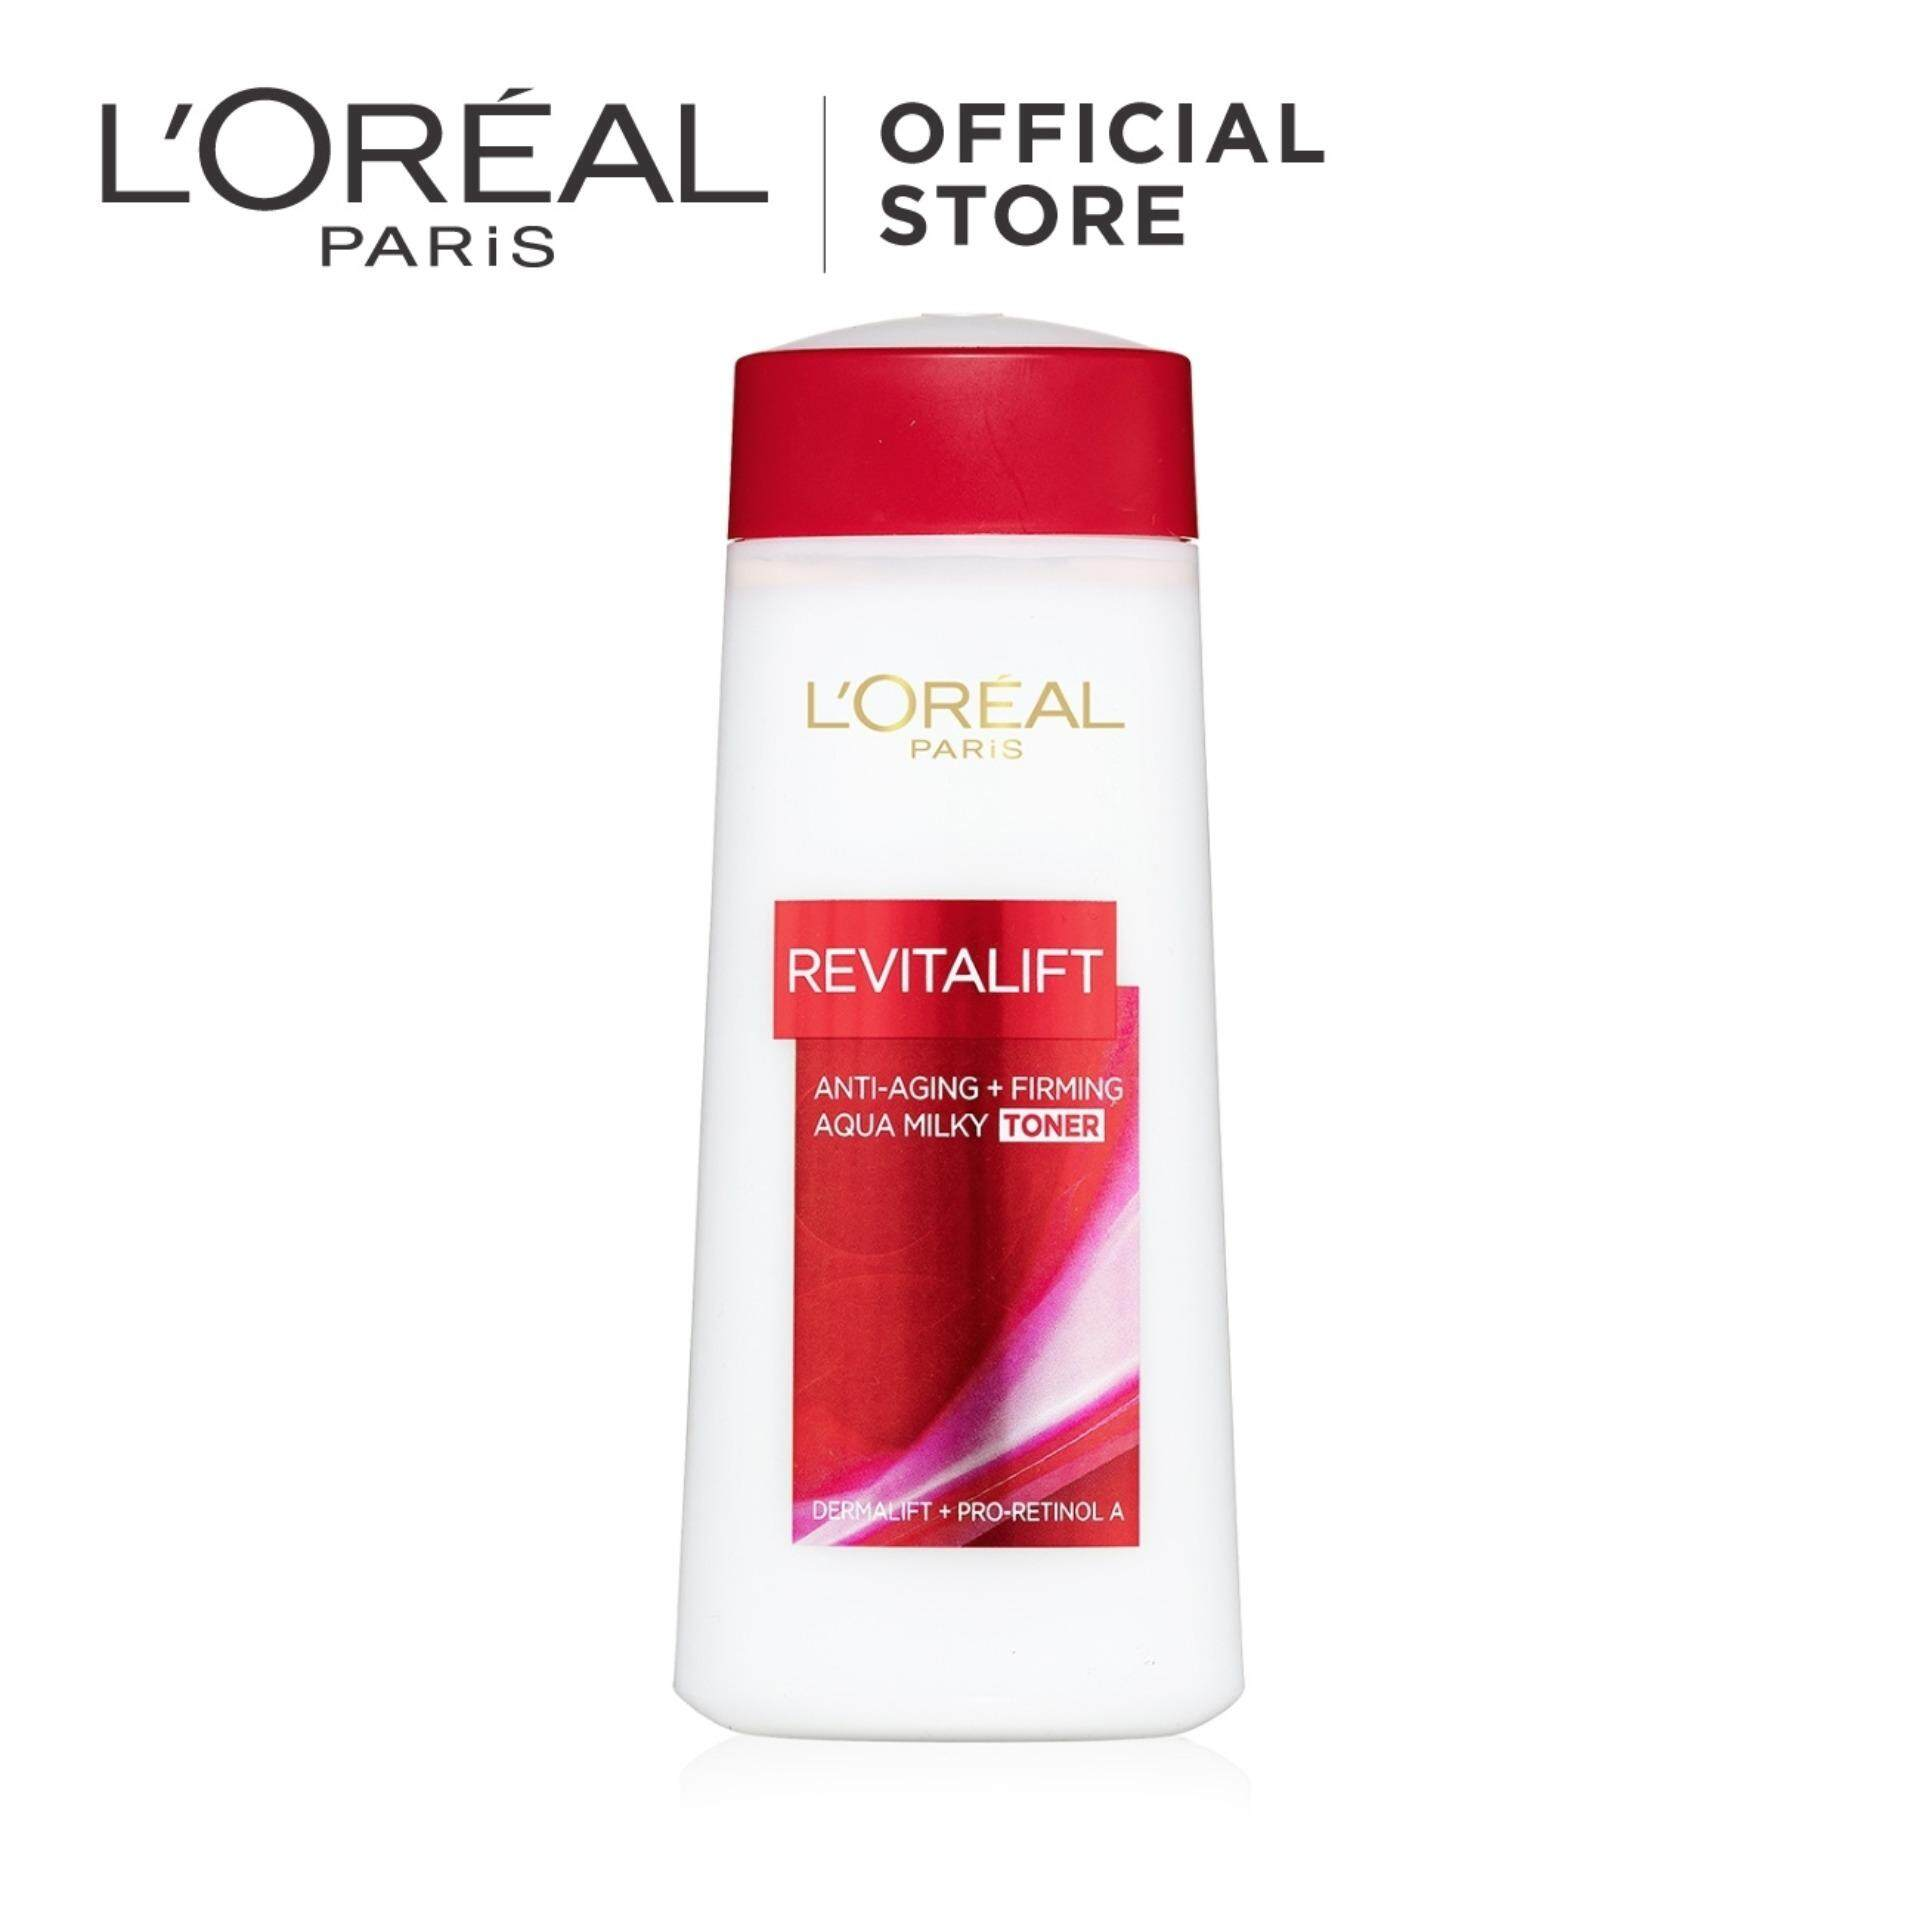 L'Oreal Paris Revitalift Aqua Milky Toner 200ml